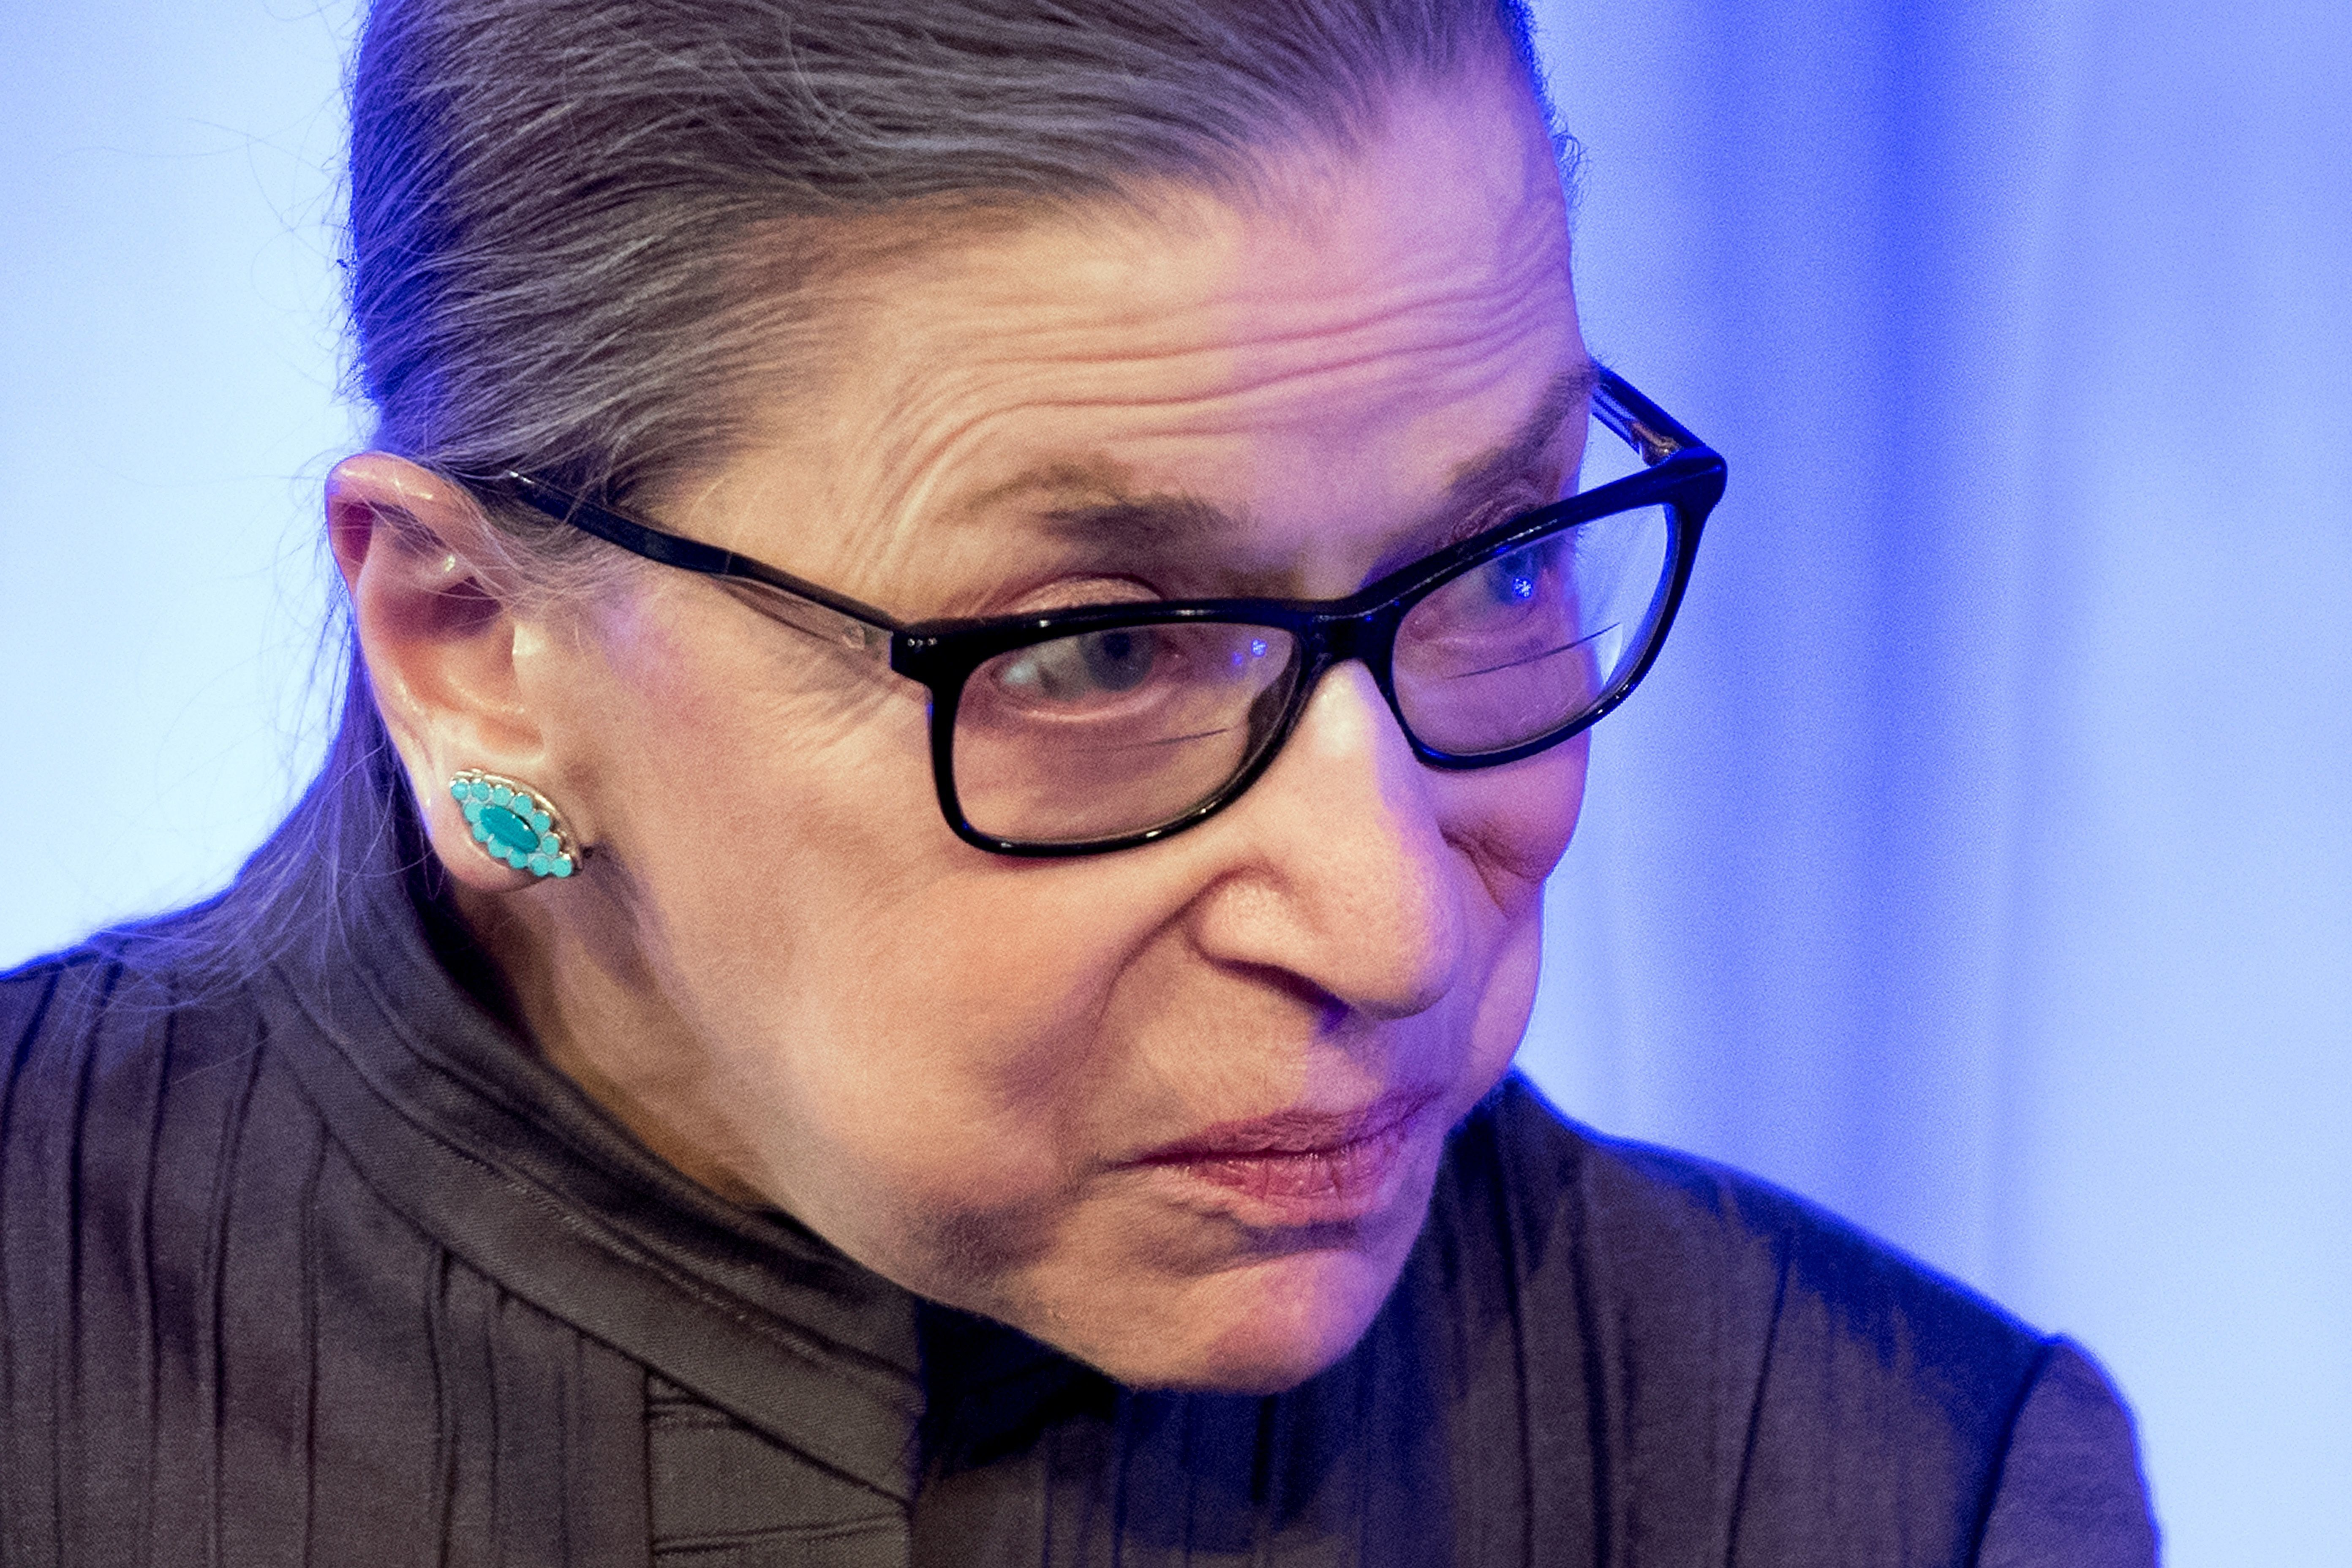 US Supreme Court Justice Ruth Bader Ginsburg speaks after receiving the American Law Institute's Henry J. Friendly Medal in Washington, DC, on May 14, 2018. (Photo by JIM WATSON / AFP)        (Photo credit should read JIM WATSON/AFP/Getty Images)